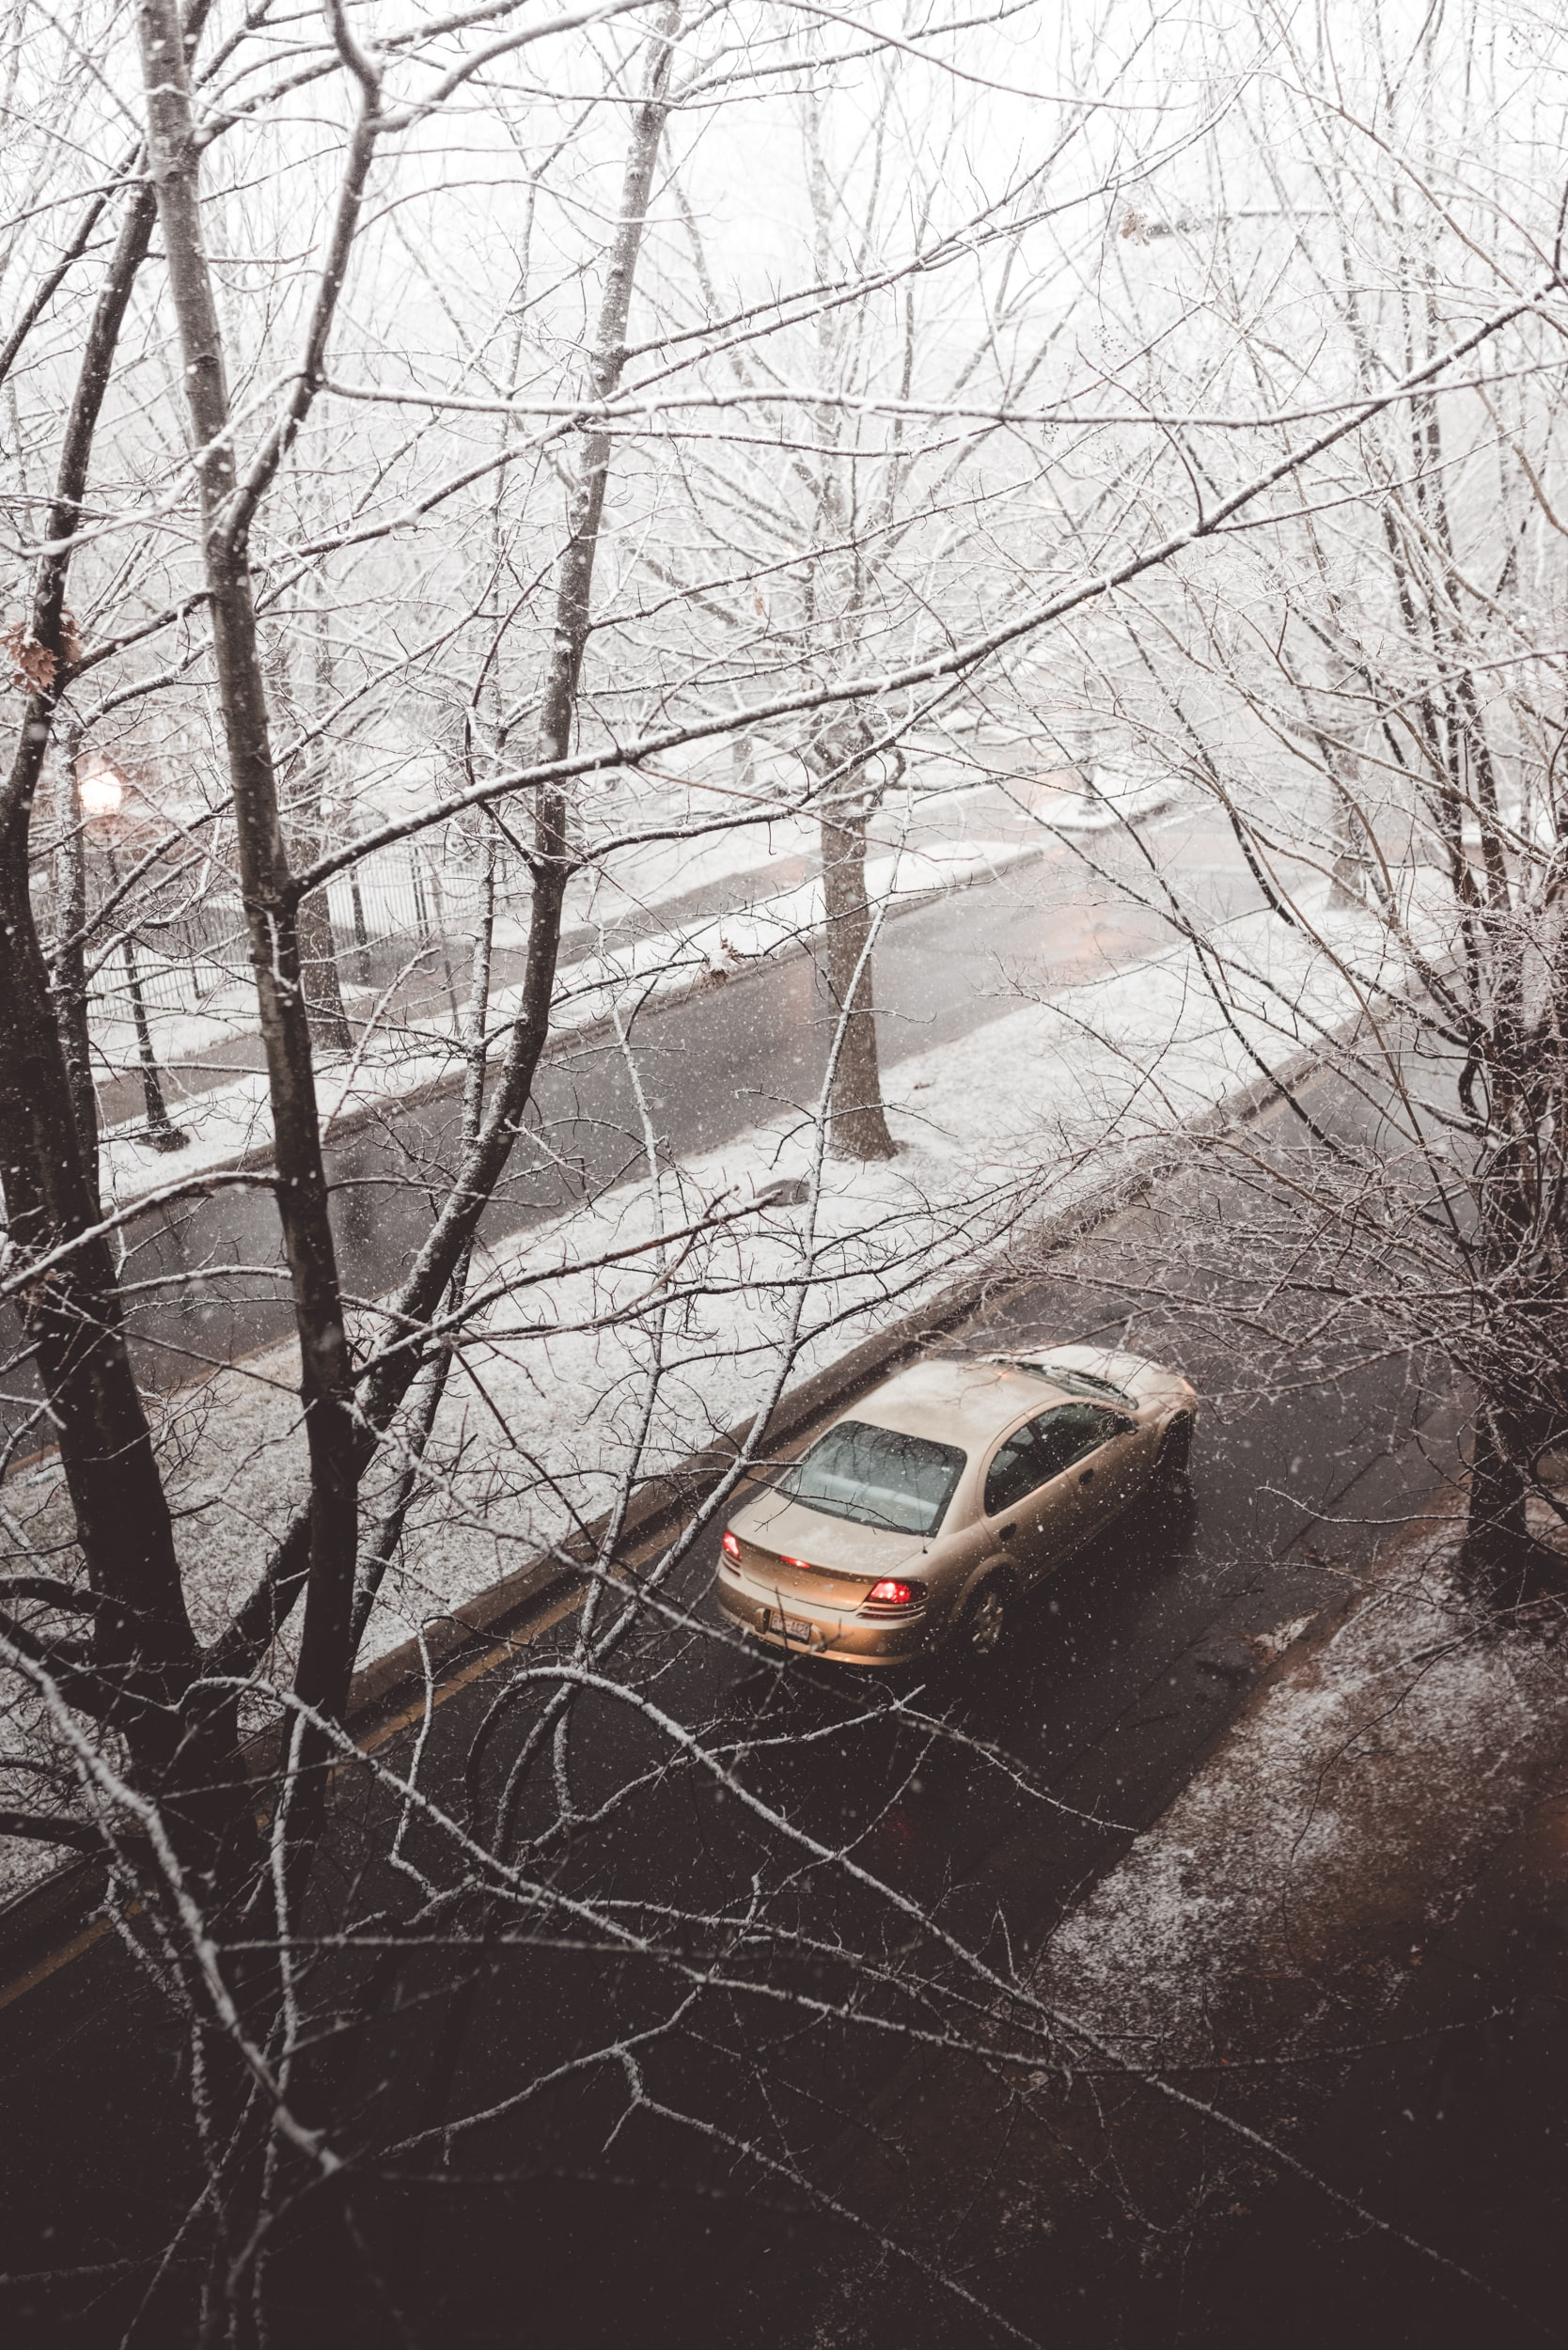 brown sedan running on the street surrounded with bare trees during winter